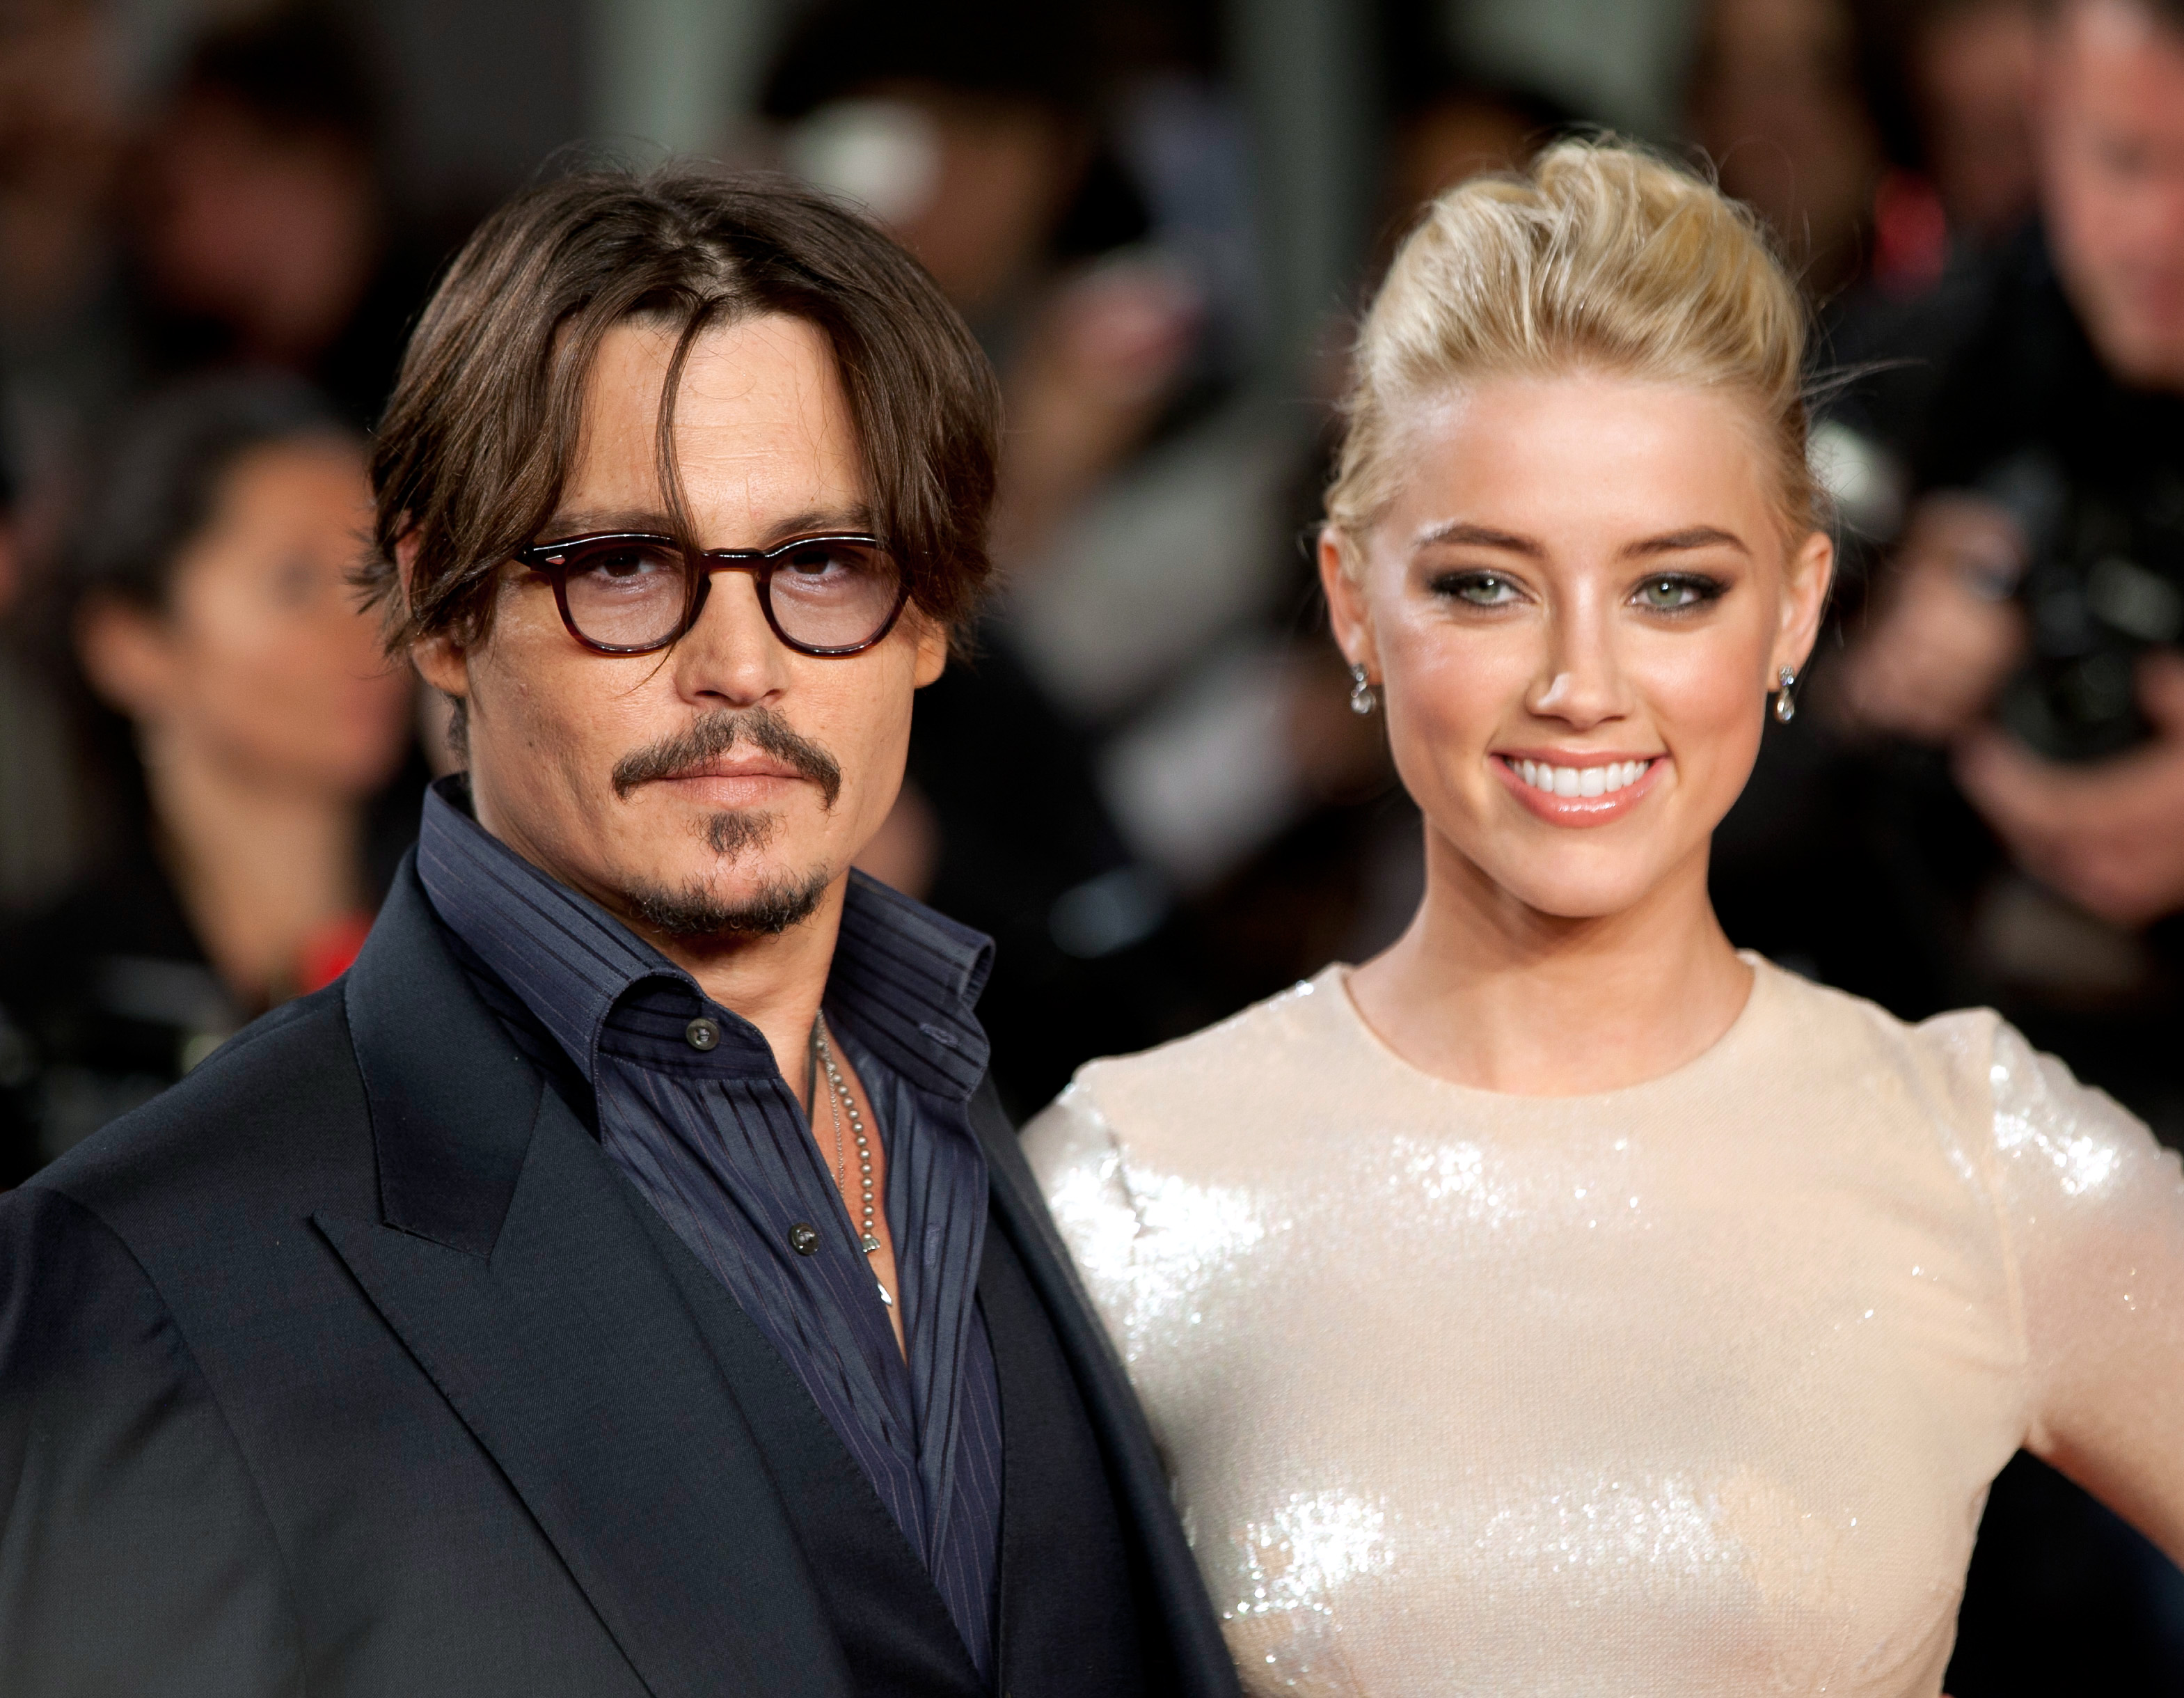 Johnny Depp's pal Doug Stanhope accuses Amber Heard of blackmail